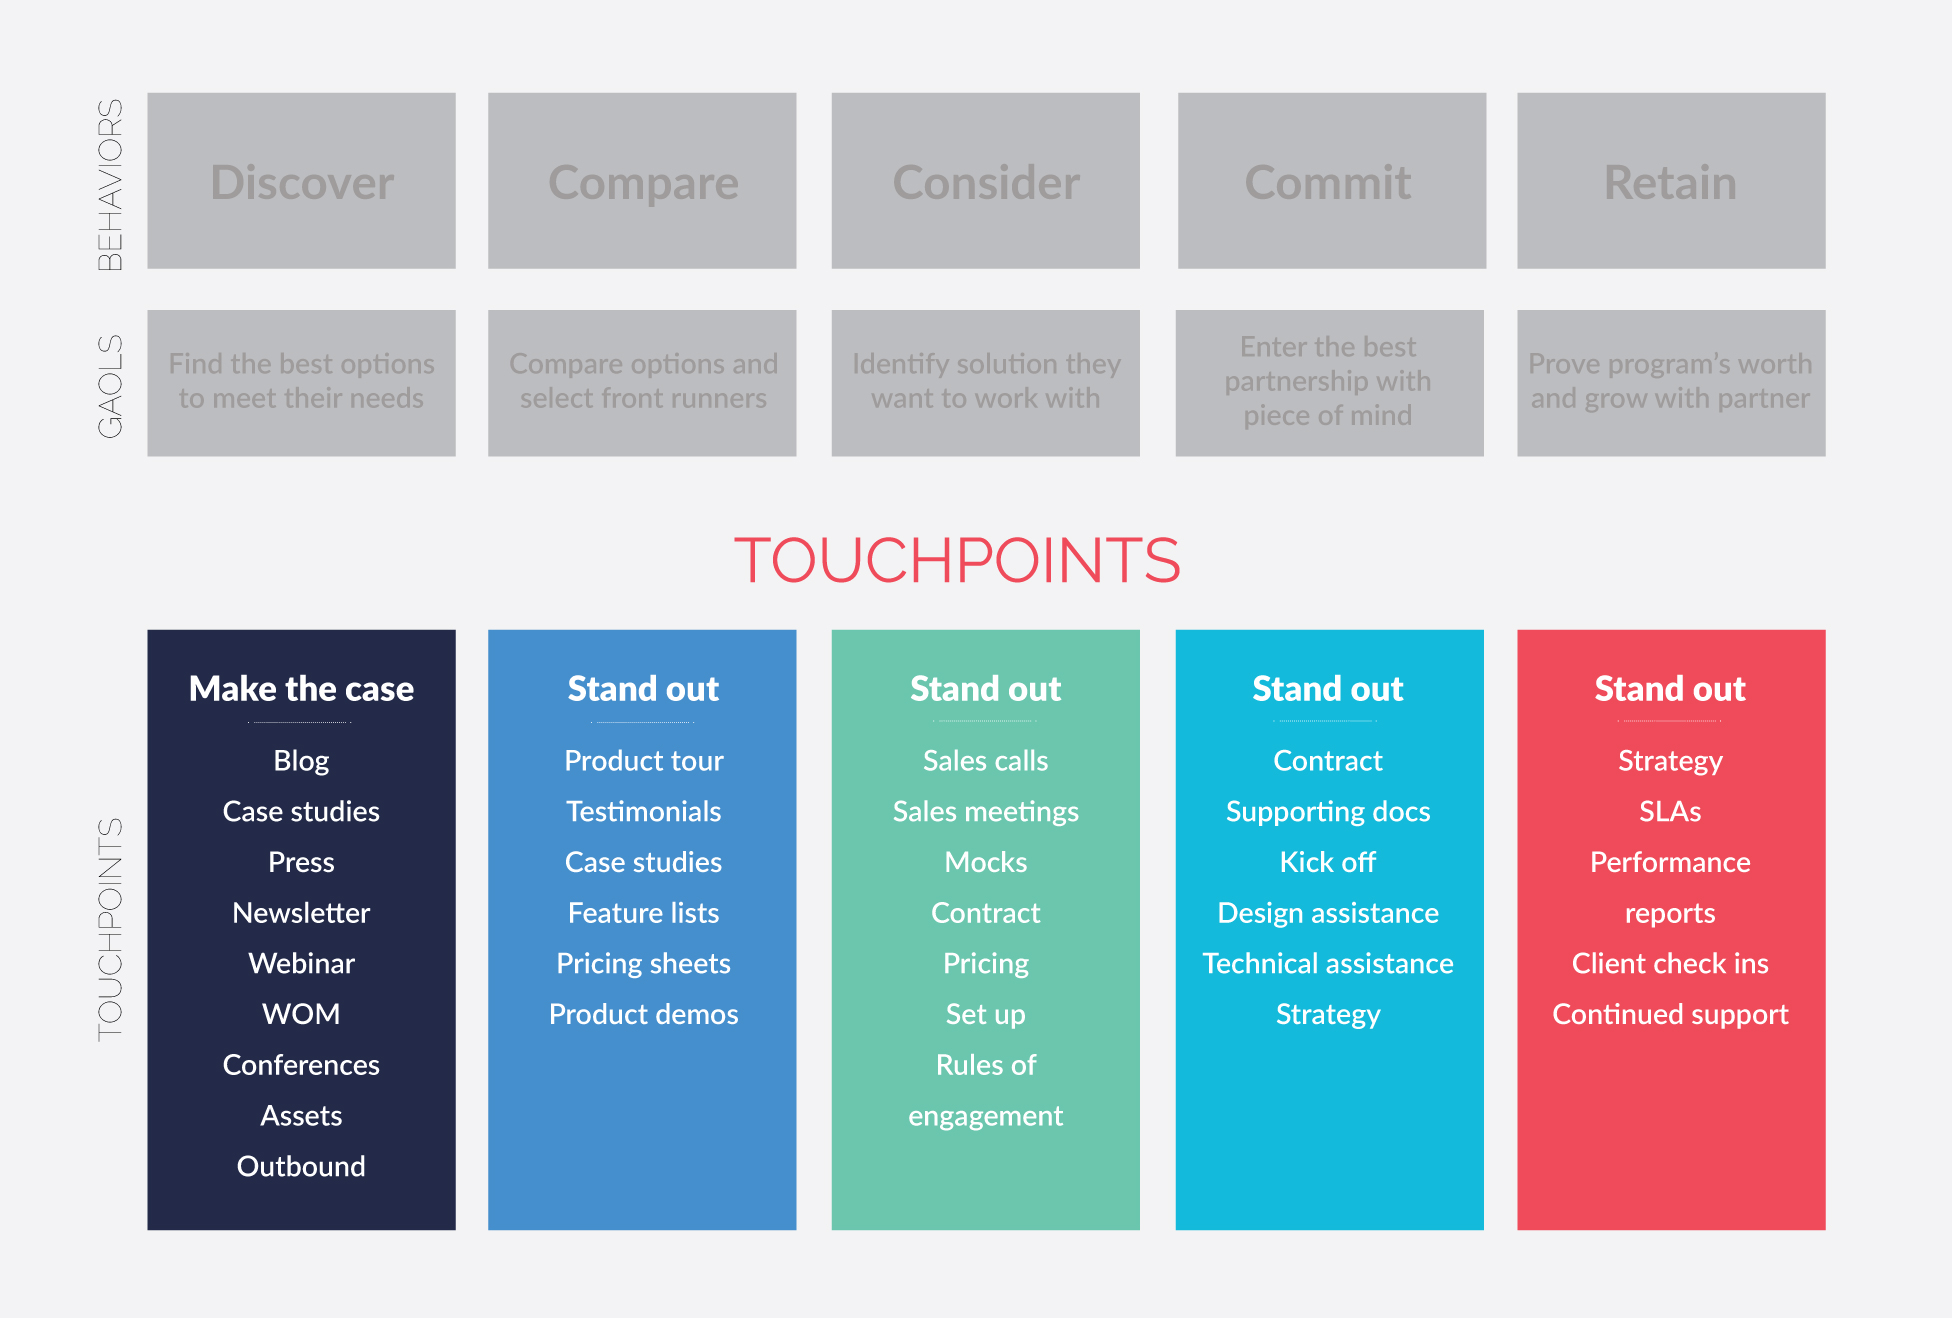 Mobile Customer Journey Map: Touchpoints